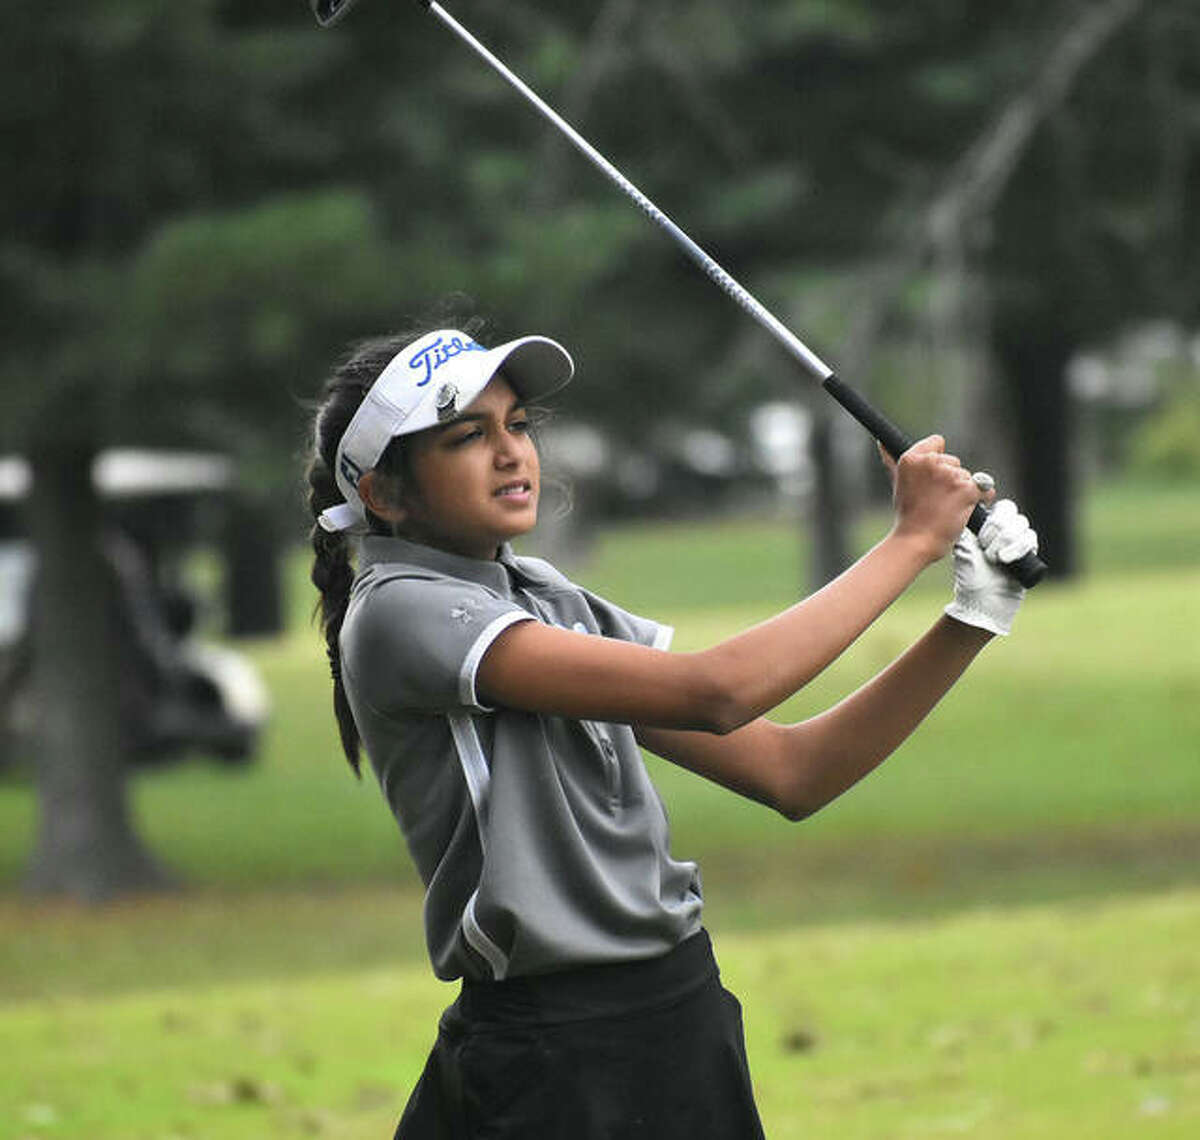 Edwardsville's Ruhee Gupchup watches her second shot on No. 9 at Oak Brook Golf Club during a triangular with Marquette and Triad on Wednesday in Edwardsville.